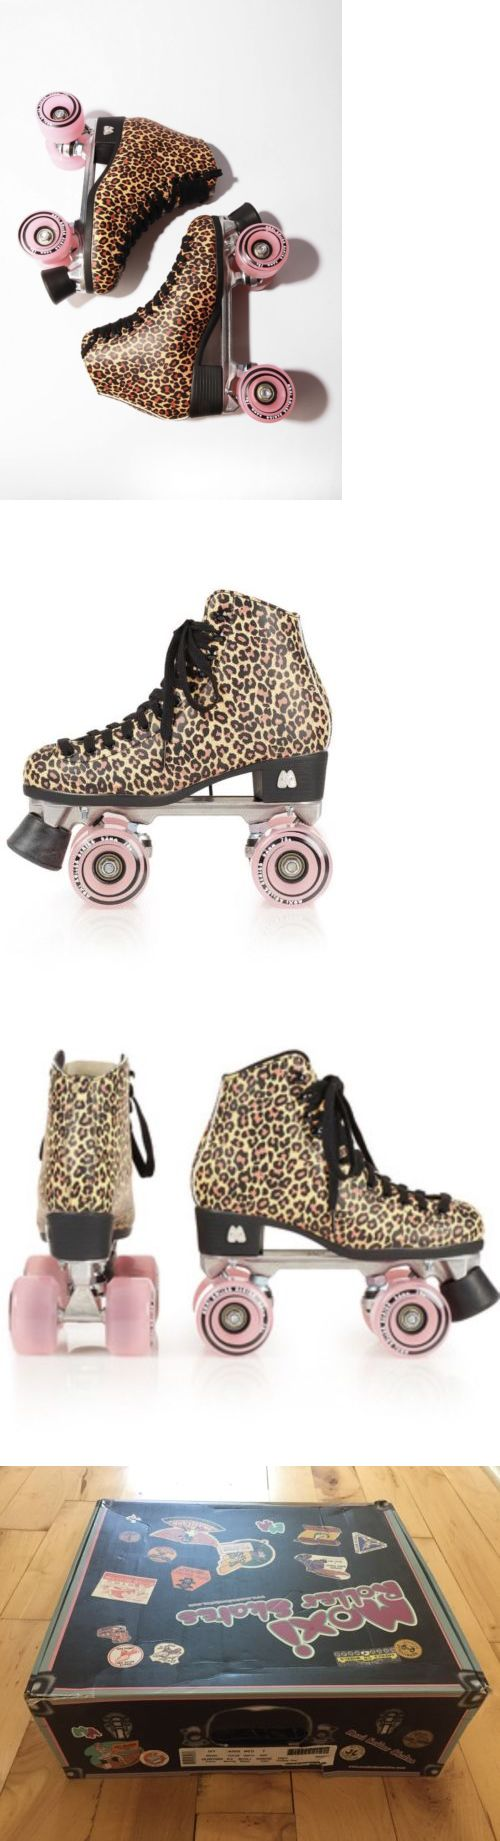 Women 16261: Nib 2016 Riedell Moxi Ivy Brown Leopard Women S Indoor Outdoor Roller Skates 7M -> BUY IT NOW ONLY: $199.99 on eBay!